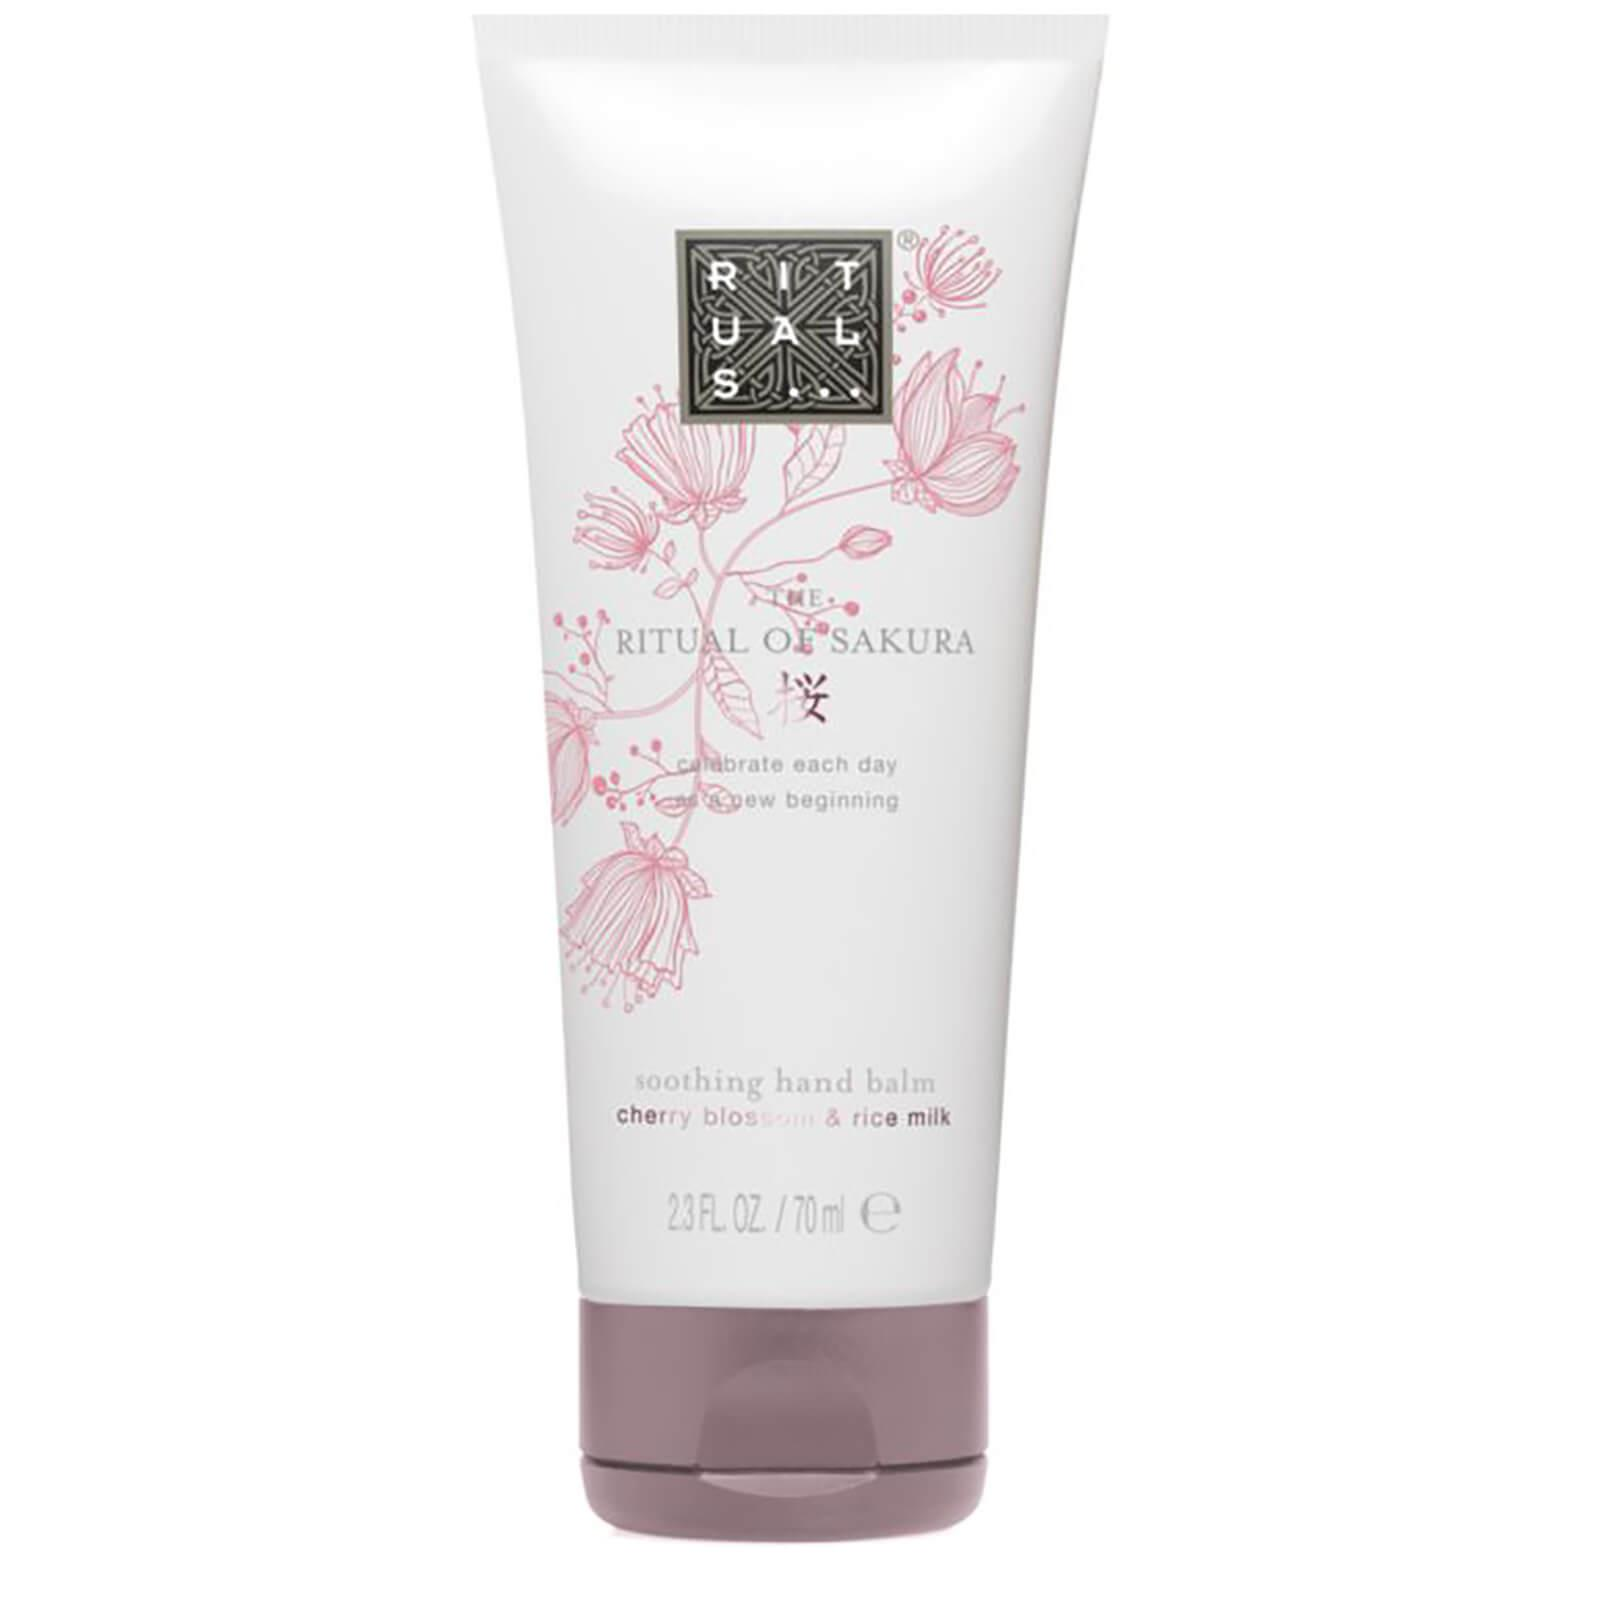 Crema de manos The Ritual of Sakura, de Rituals